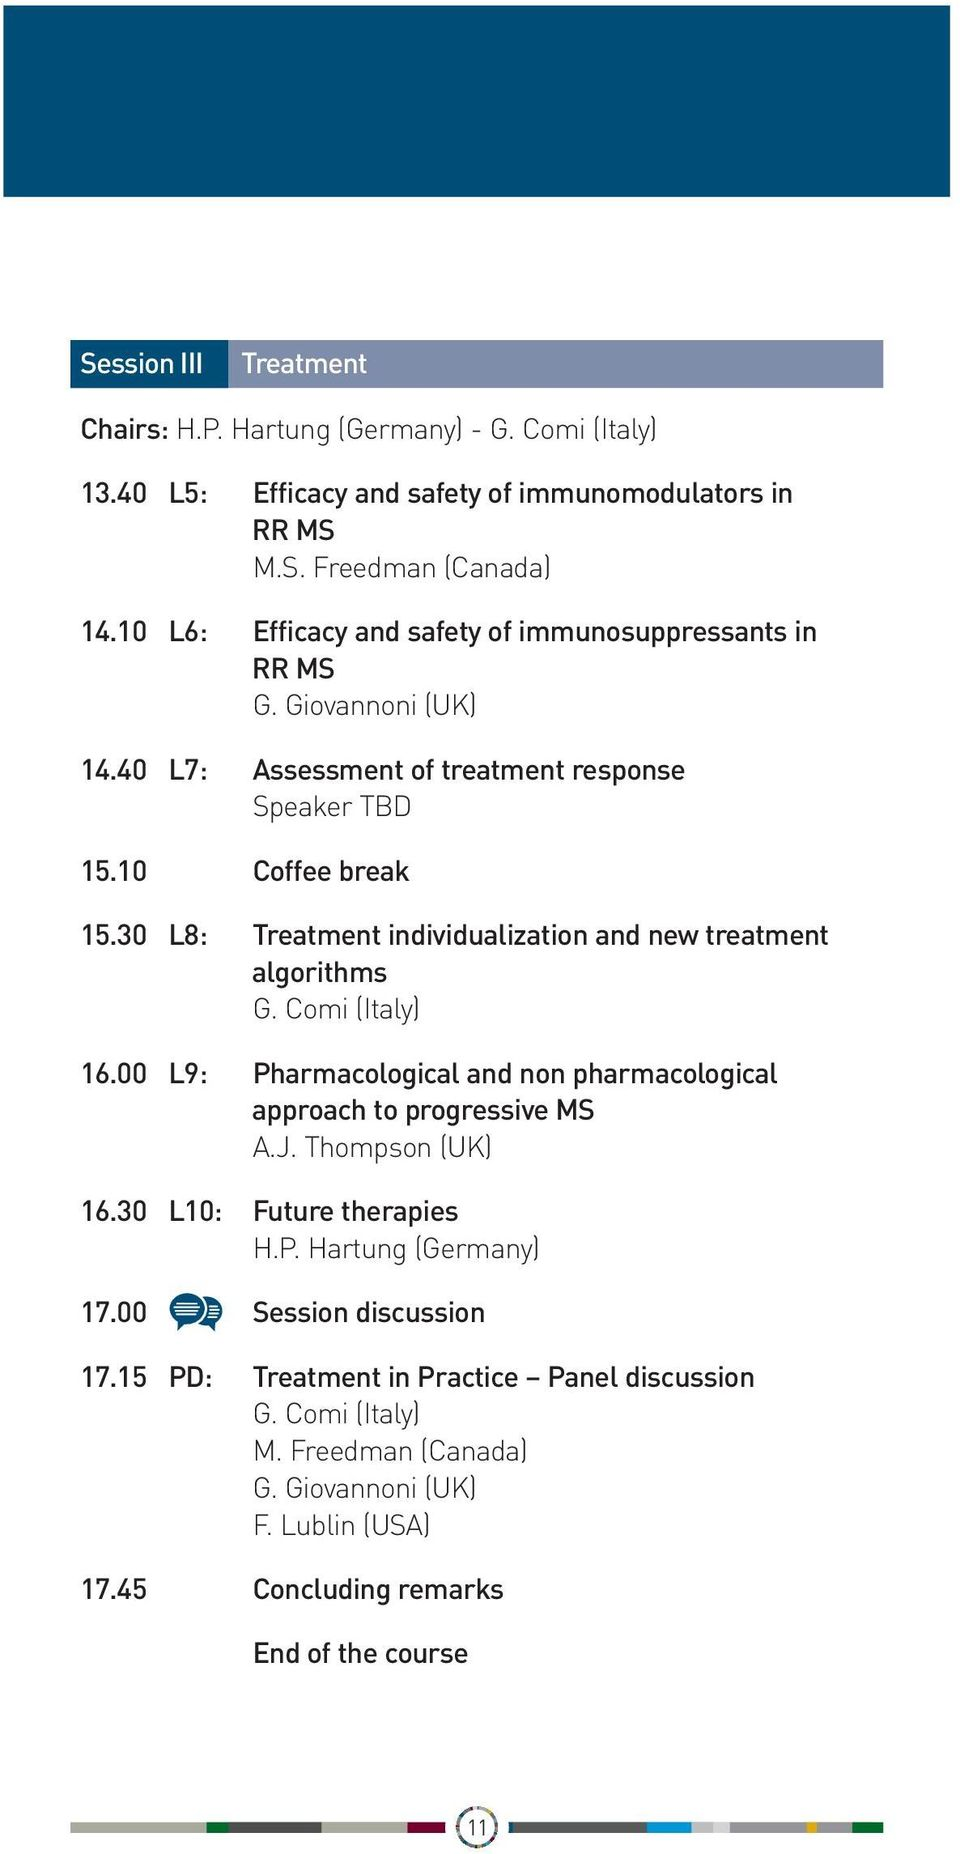 30 L8: Treatment individualization and new treatment algorithms G. Comi (Italy) 16.00 L9: Pharmacological and non pharmacological approach to progressive MS A.J. Thompson (UK) 16.